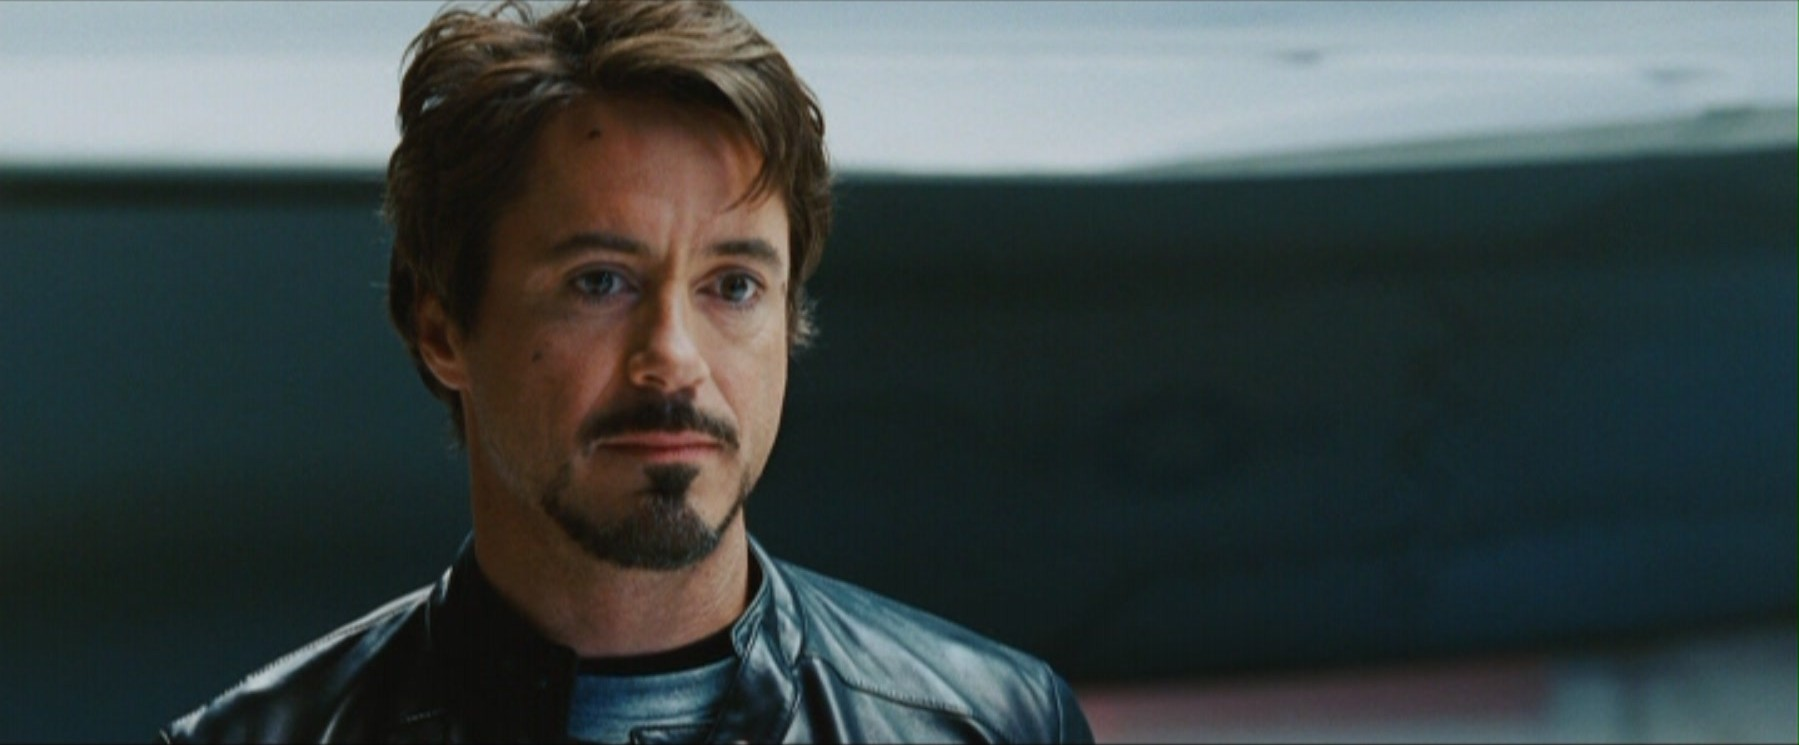 tony stark images hd - photo #49